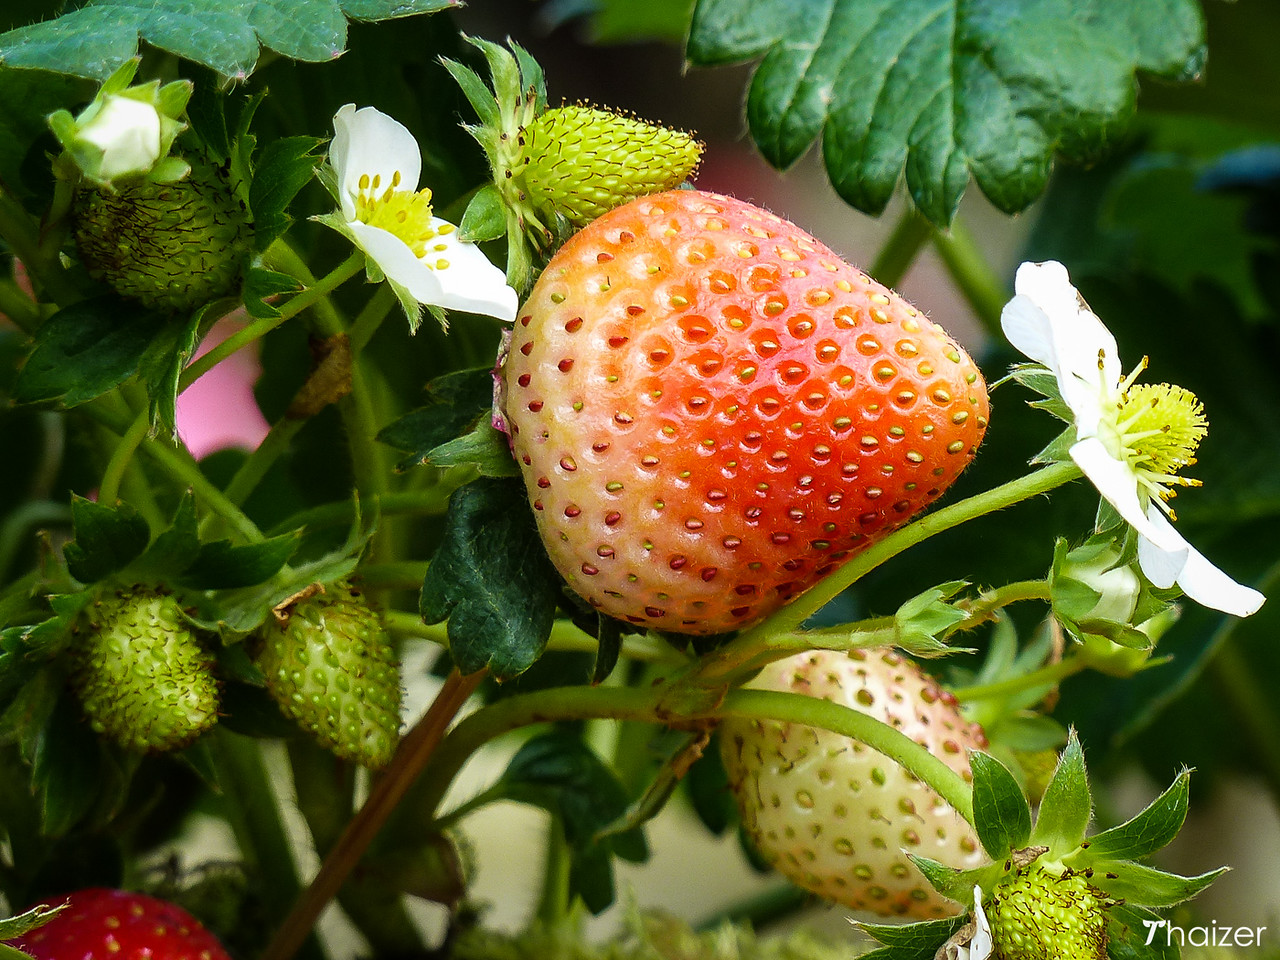 strawberries at Khun Wang